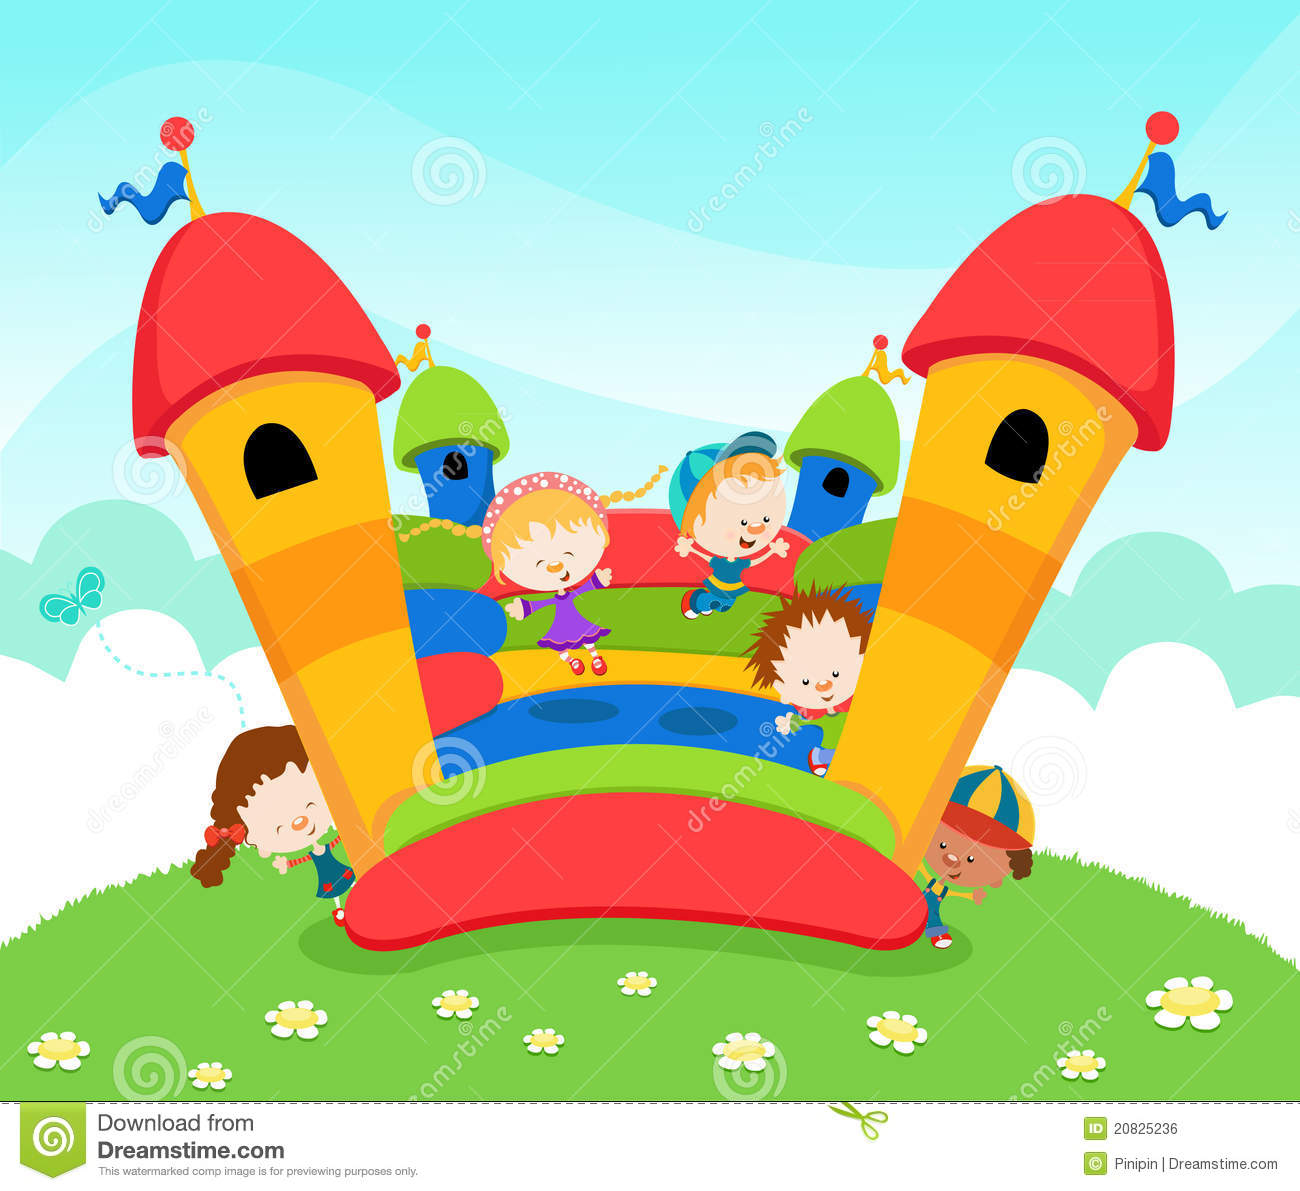 Bouncy Castle Clipart - Clipart Kid